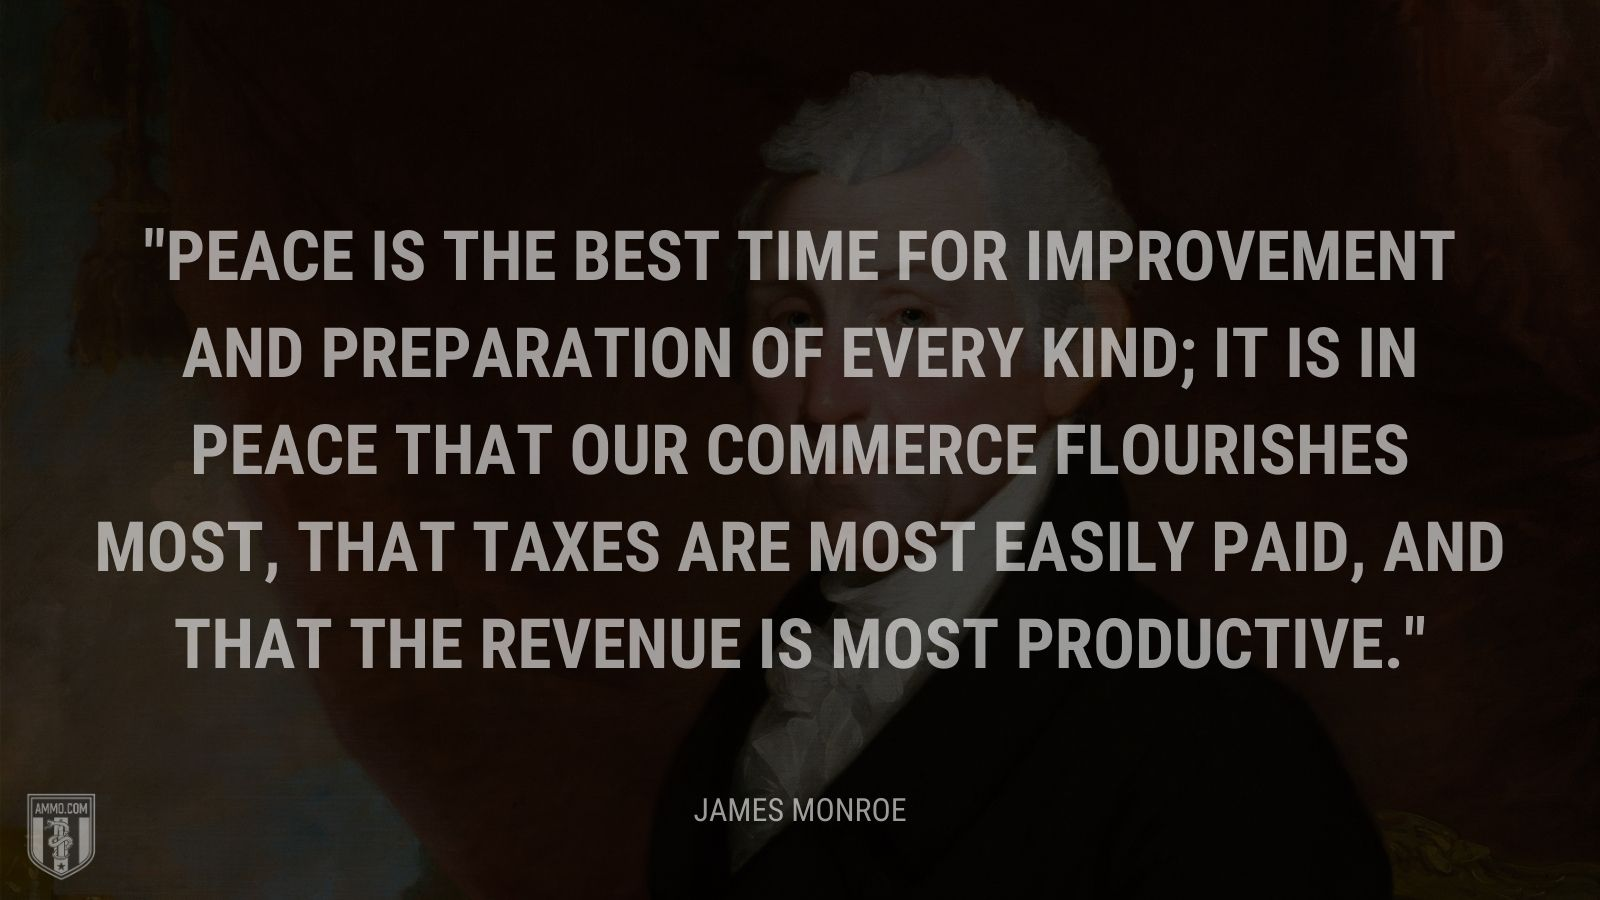 """Peace is the best time for improvement and preparation of every kind; it is in peace that our commerce flourishes most, that taxes are most easily paid, and that the revenue is most productive."" - James Monroe"